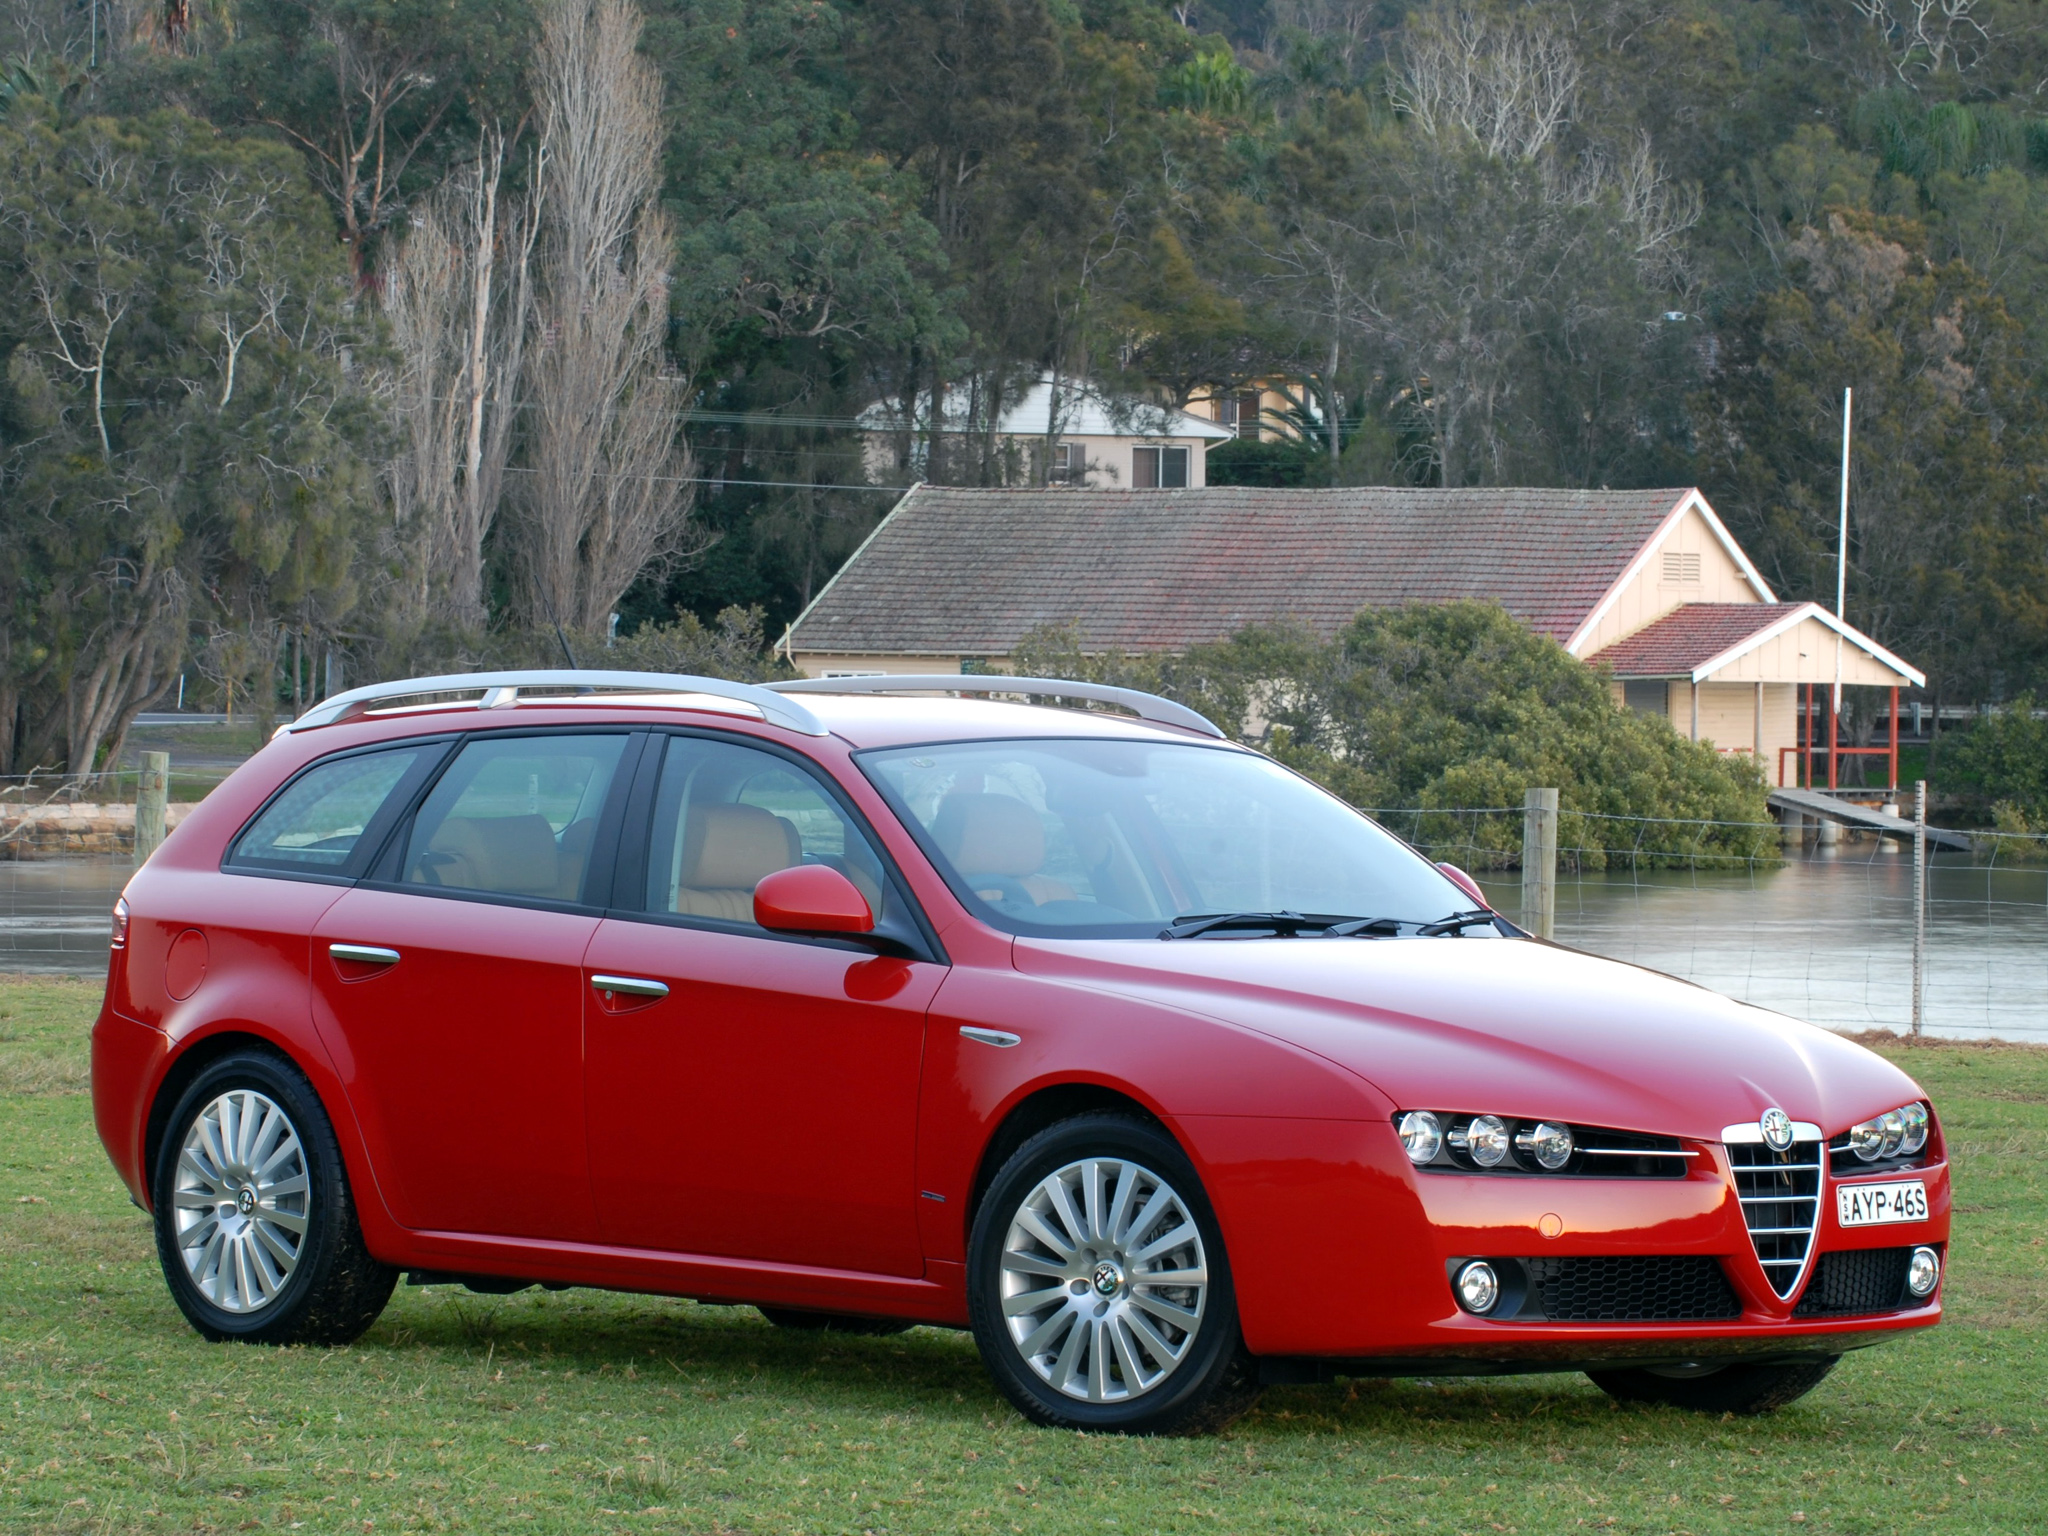 2006 alfa romeo 159 sportwagon pictures information and. Black Bedroom Furniture Sets. Home Design Ideas